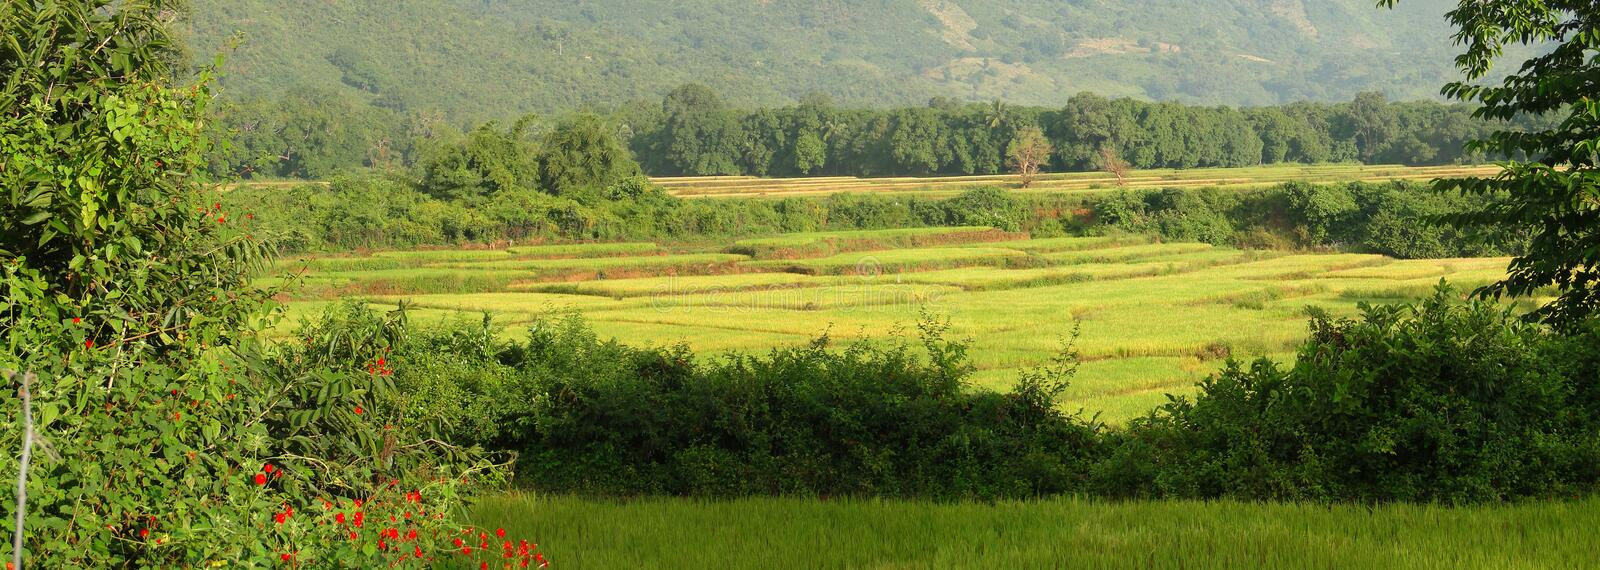 Rice paddies in valley